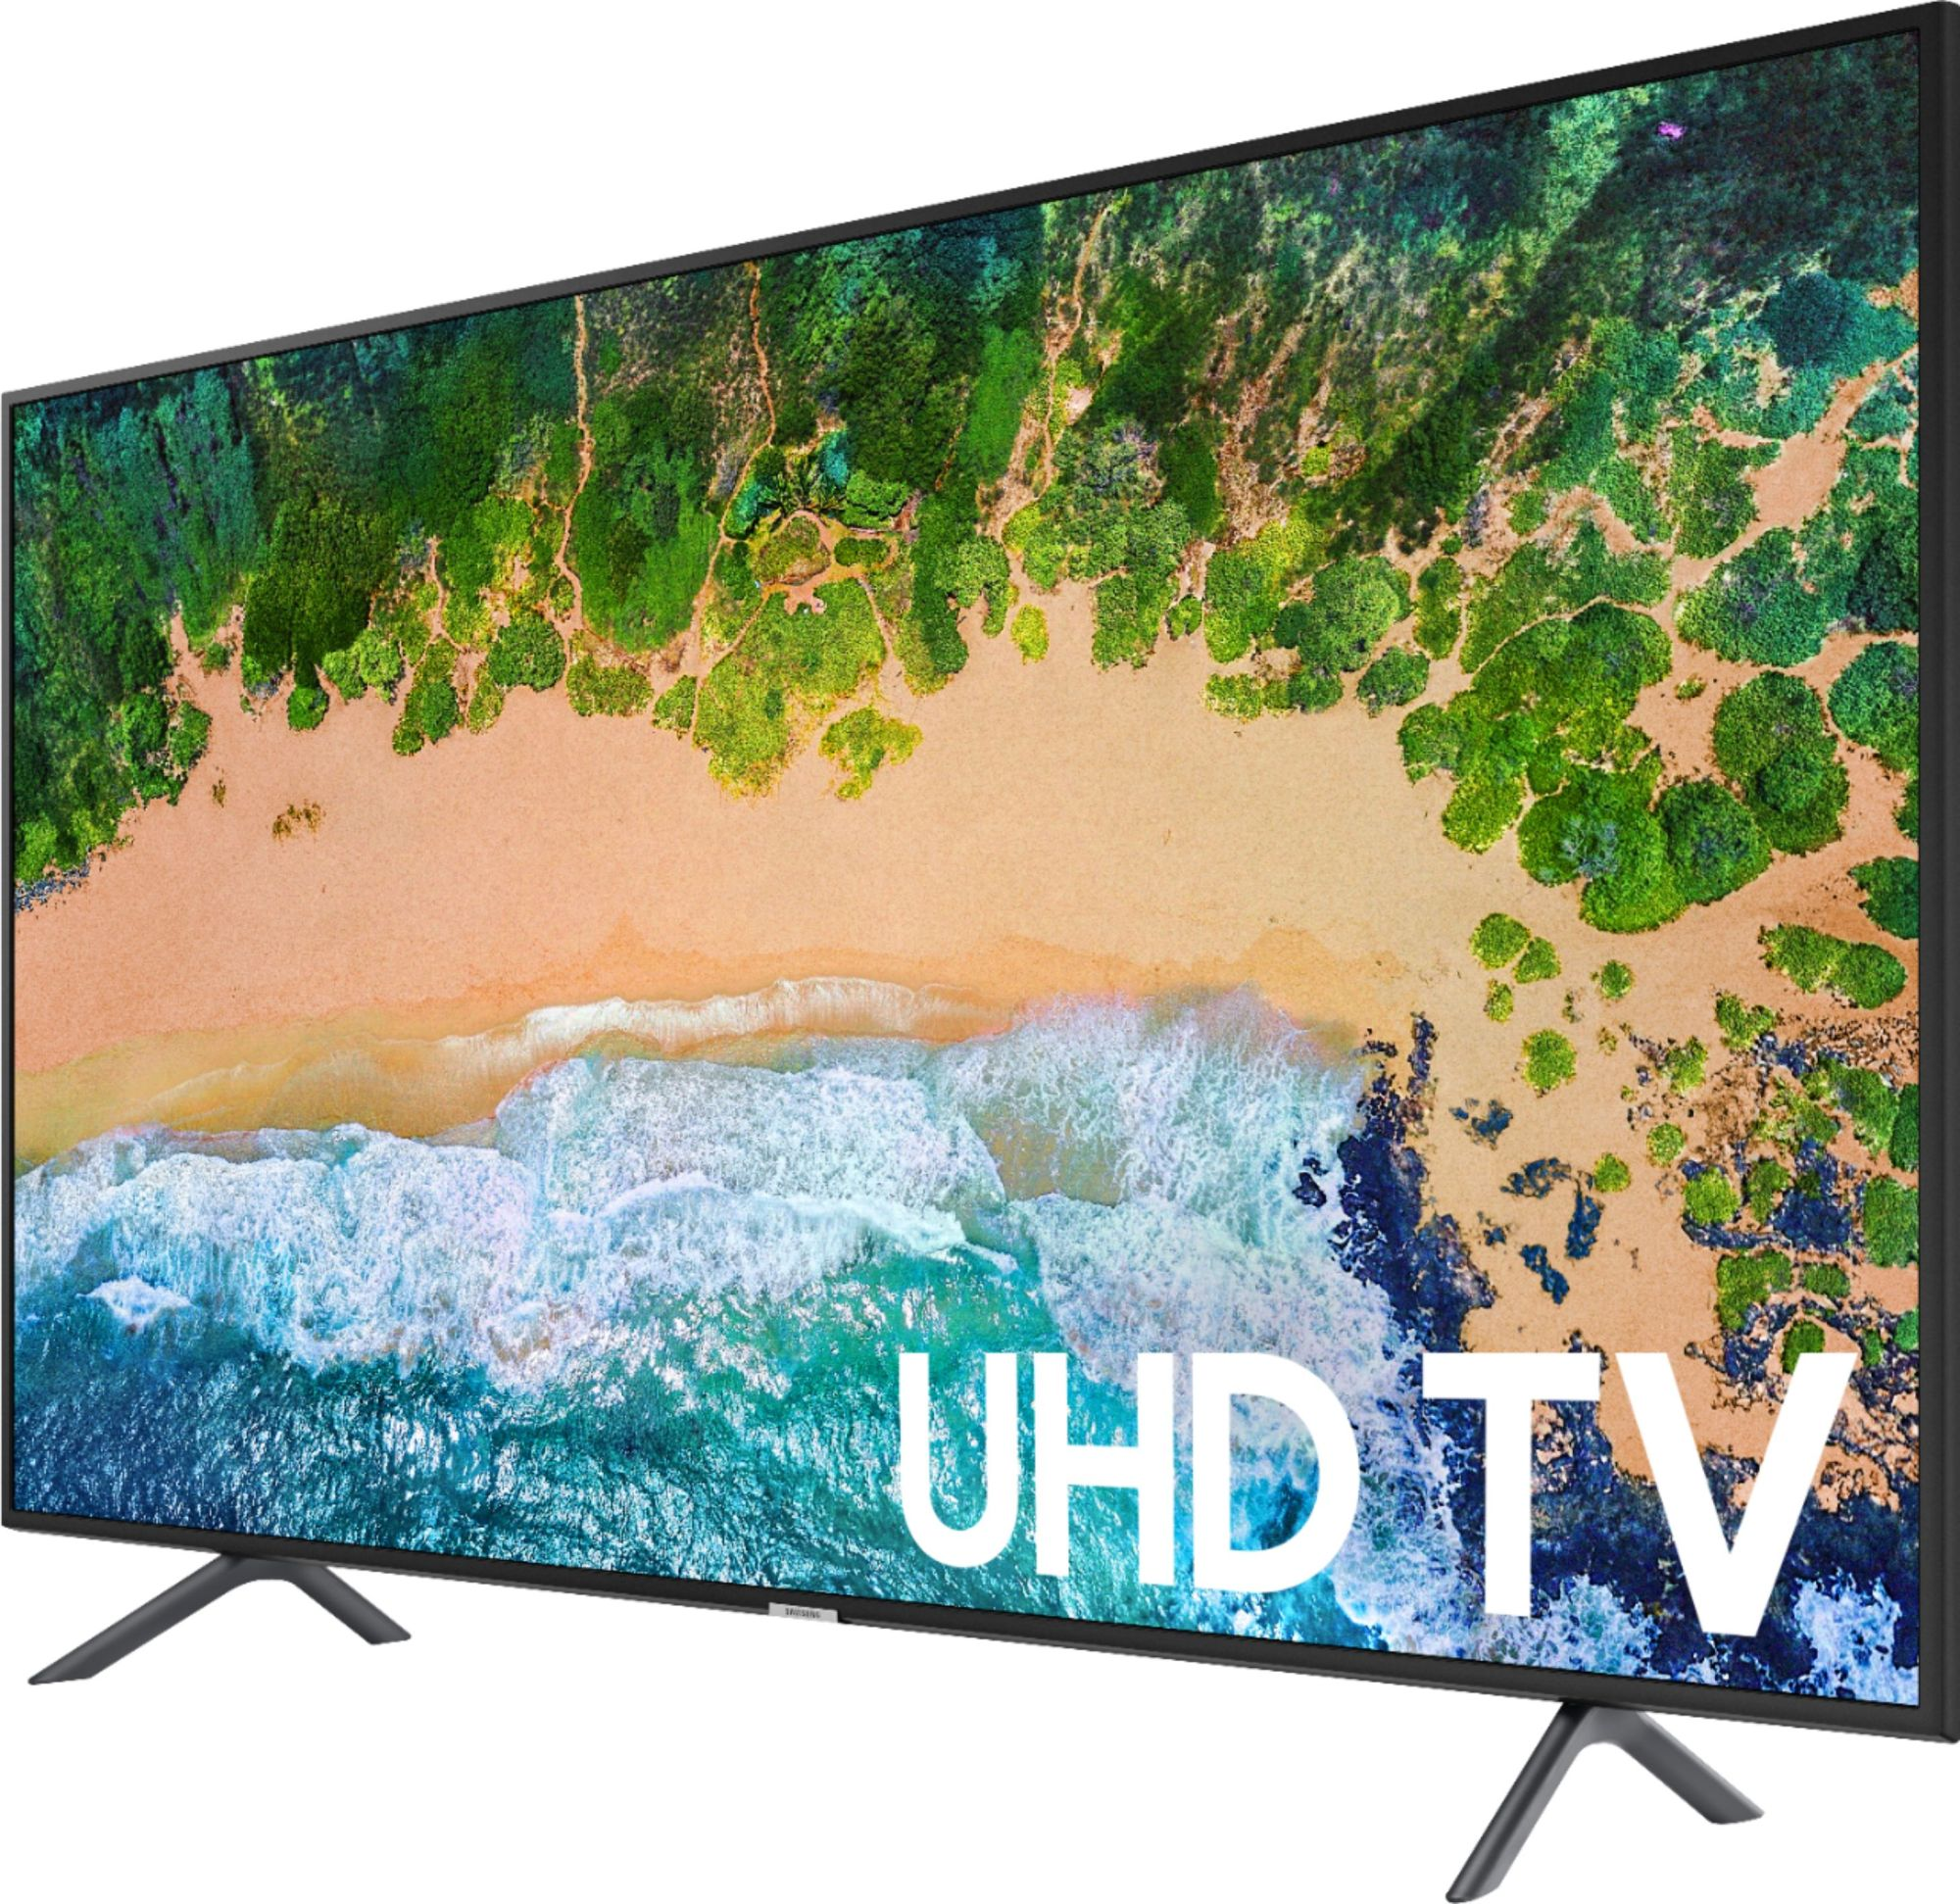 hight resolution of samsung 75 class led nu6900 series 2160p smart 4k uhd tv with hdr un75nu6900fxza best buy